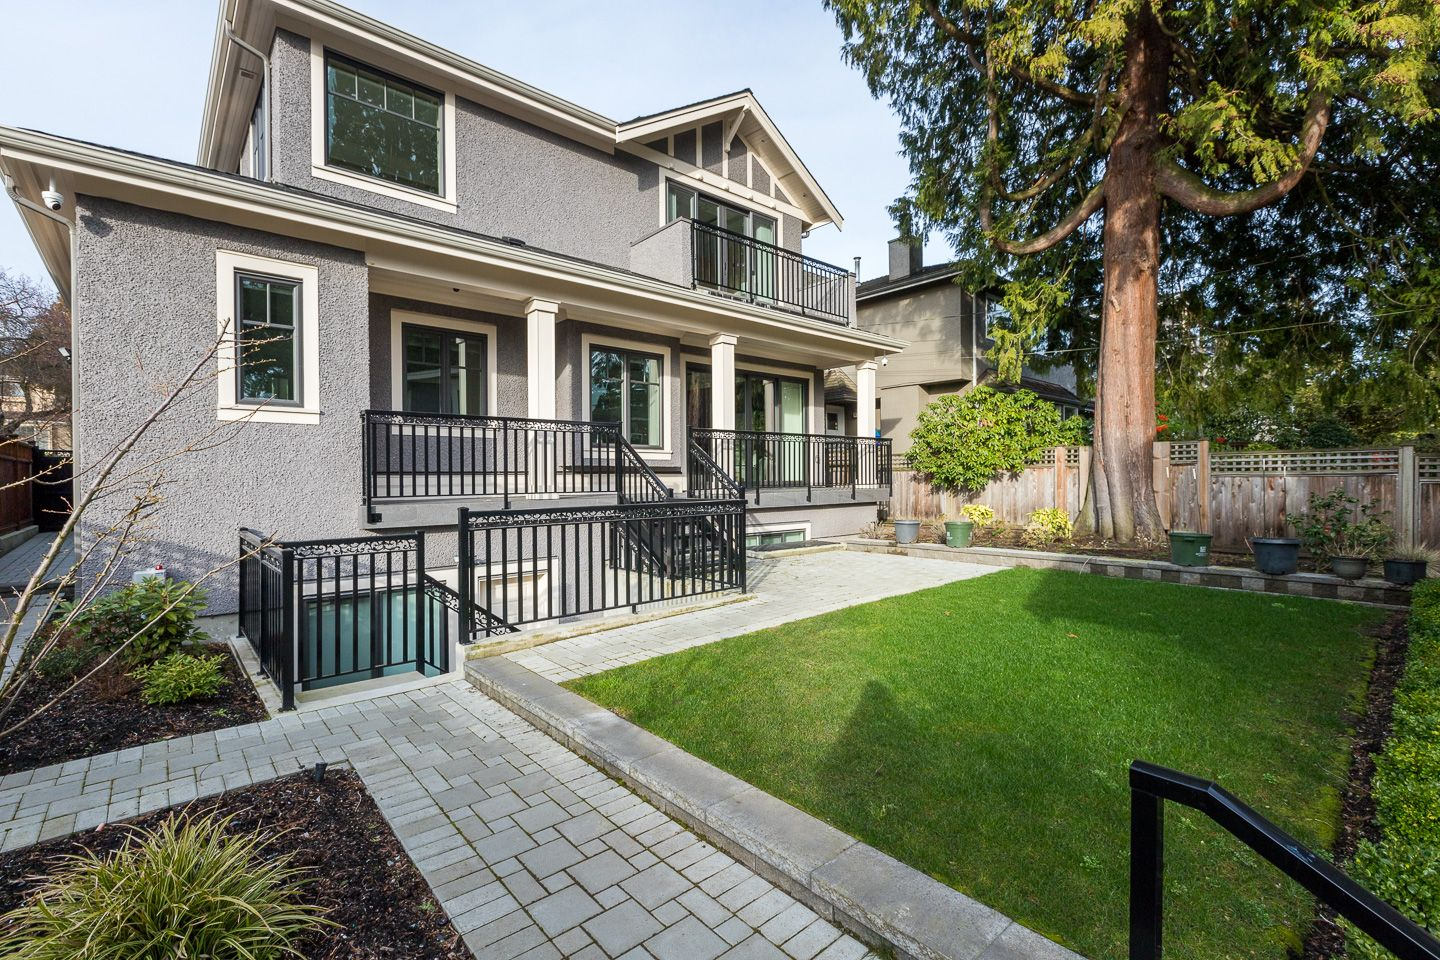 Photo 42: Photos: 1744 WEST 61ST AVE in VANCOUVER: South Granville House for sale (Vancouver West)  : MLS®# R2546980